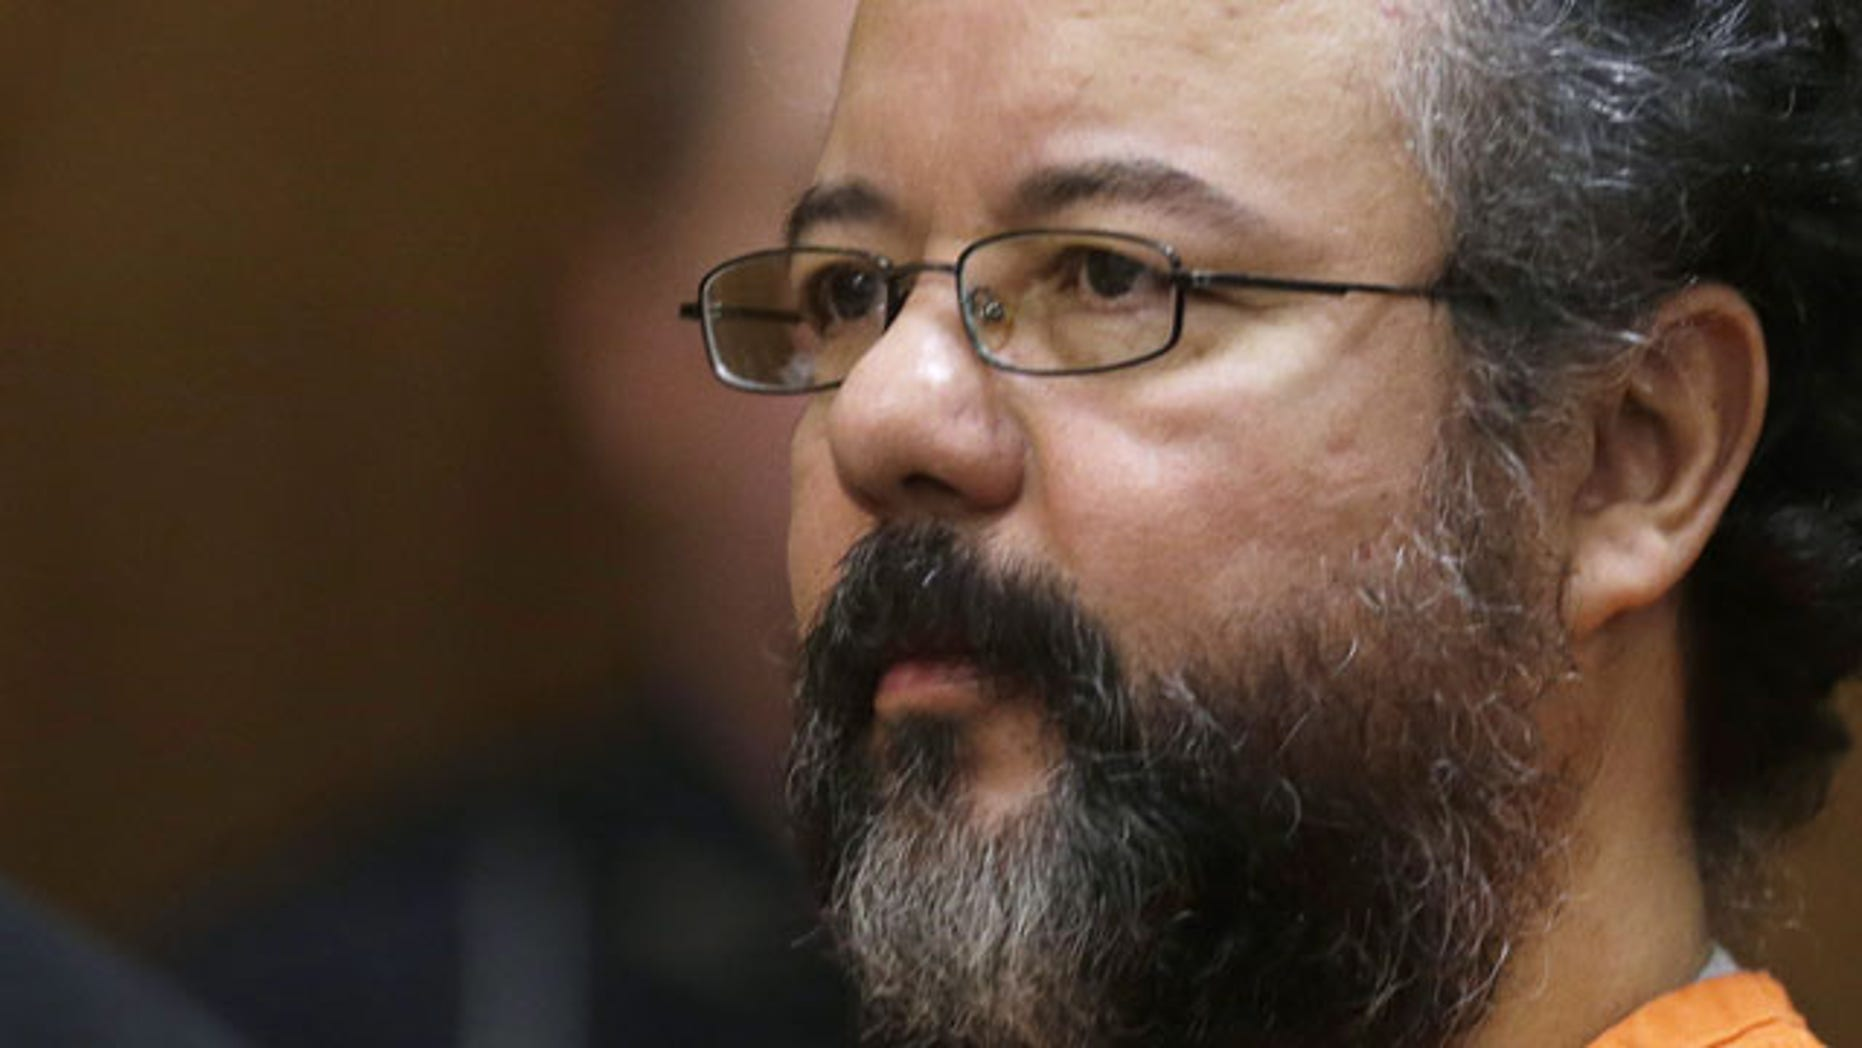 FILE - This Aug. 1, 2013 file photo shows Ariel Castro in the courtroom during the sentencing phase in Cleveland. (AP Photo)